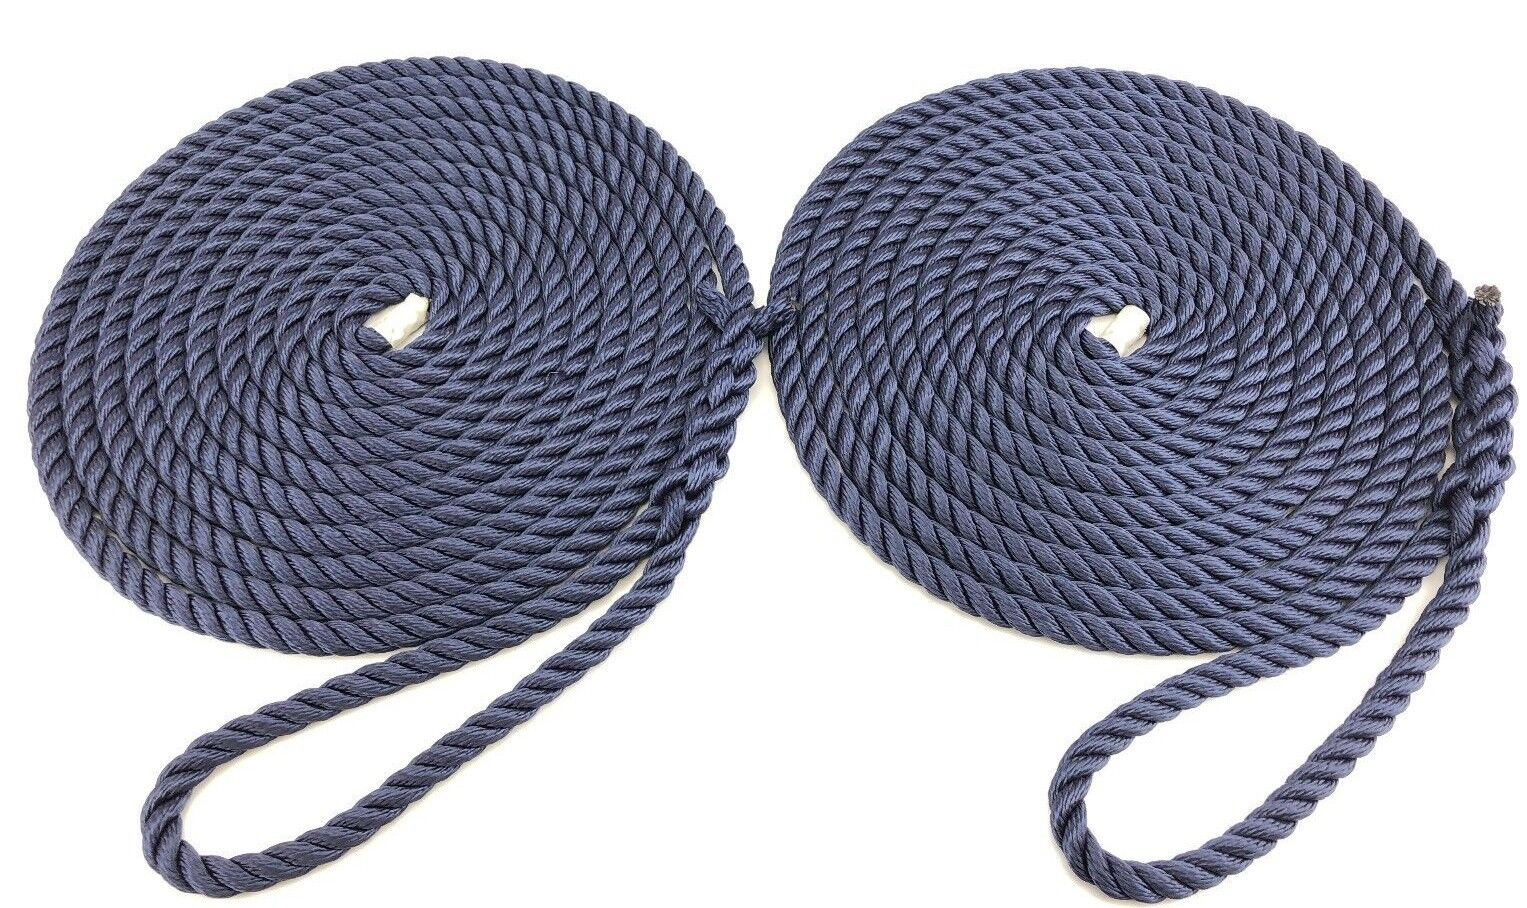 14mm Navy bluee Nylon Mooring Ropes, 2 x 16 Metres, Boats, Yachts, Lines,Soft Eye